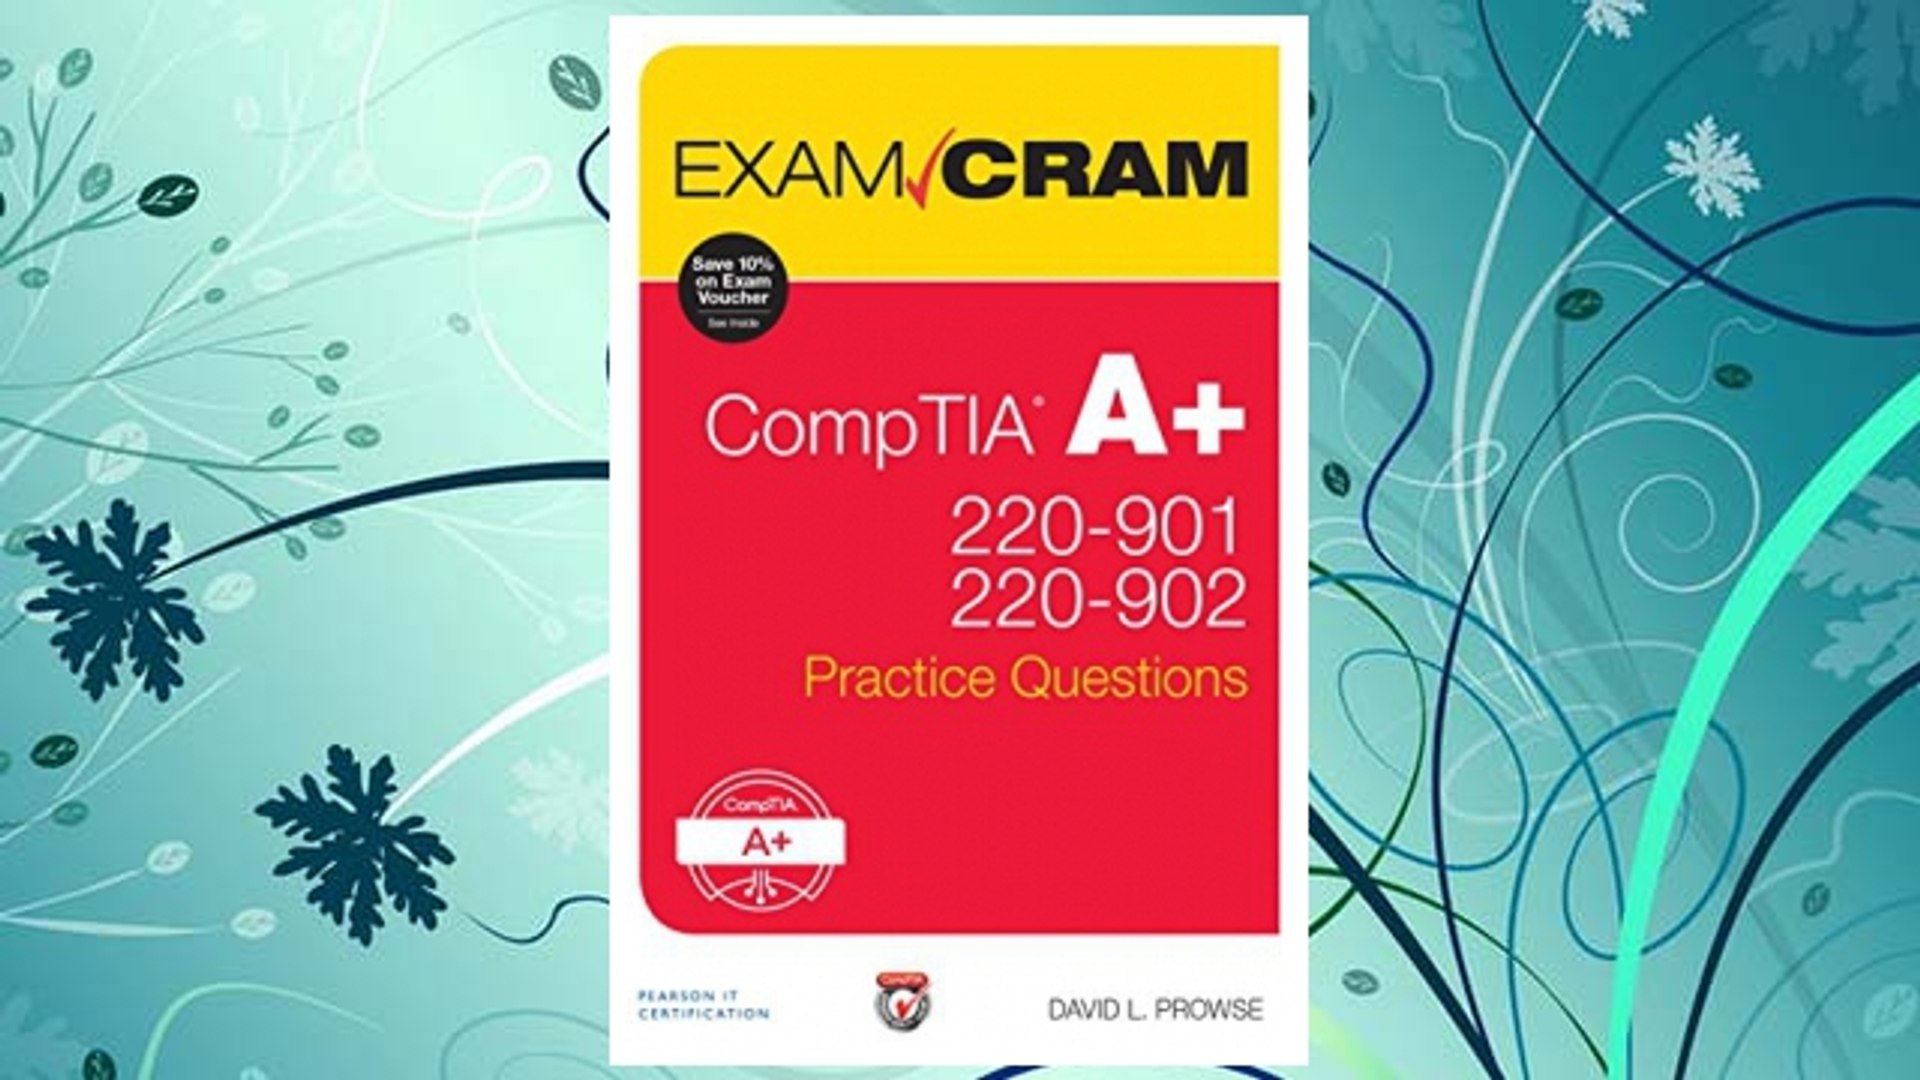 Download PDF CompTIA A+ 220-901 and 220-902 Practice Questions Exam Cram FREE